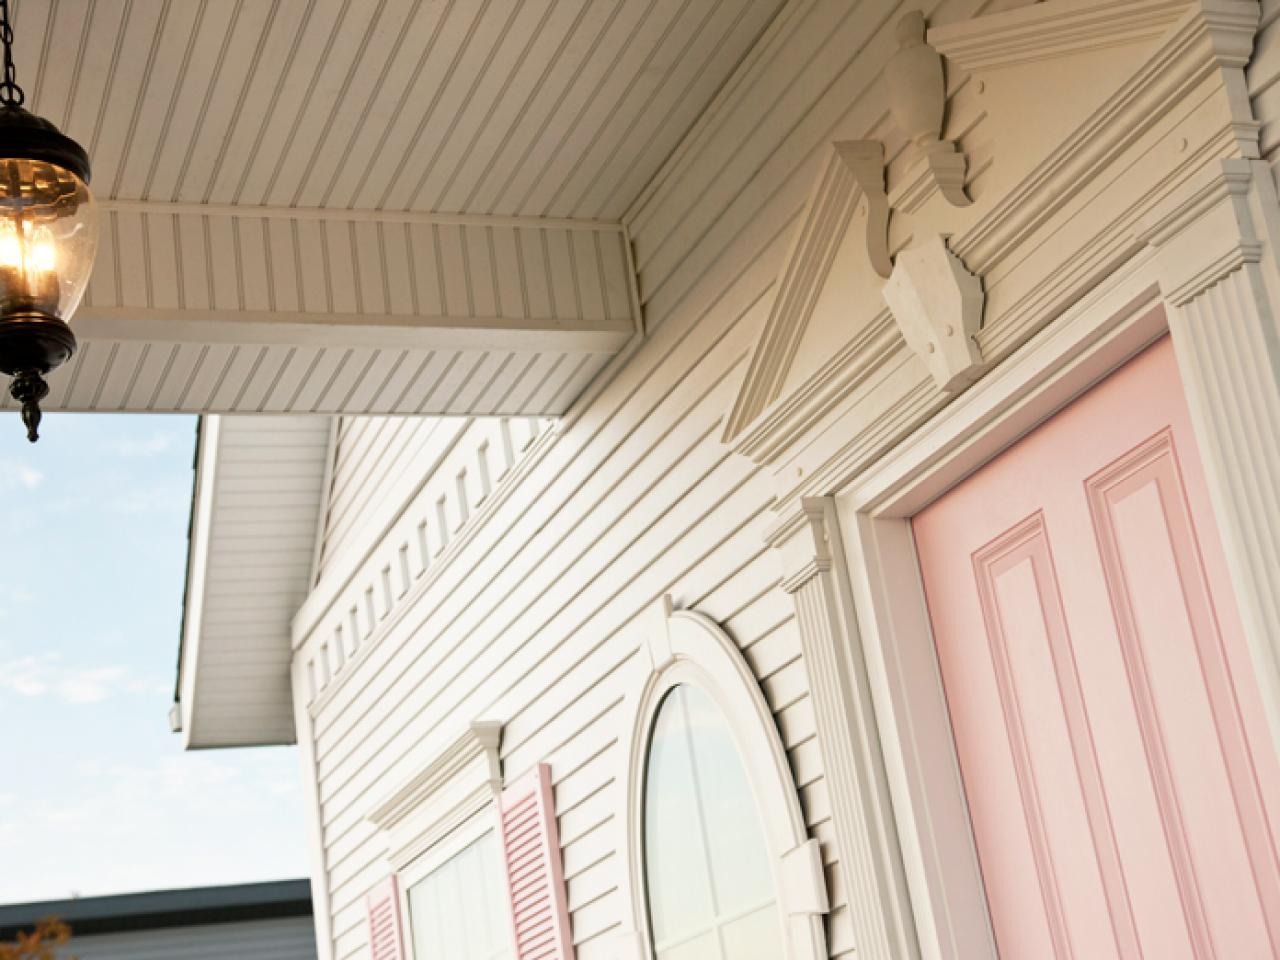 Adding Exterior Trim, Mouldings And Columns To Your Home Can Make A ...